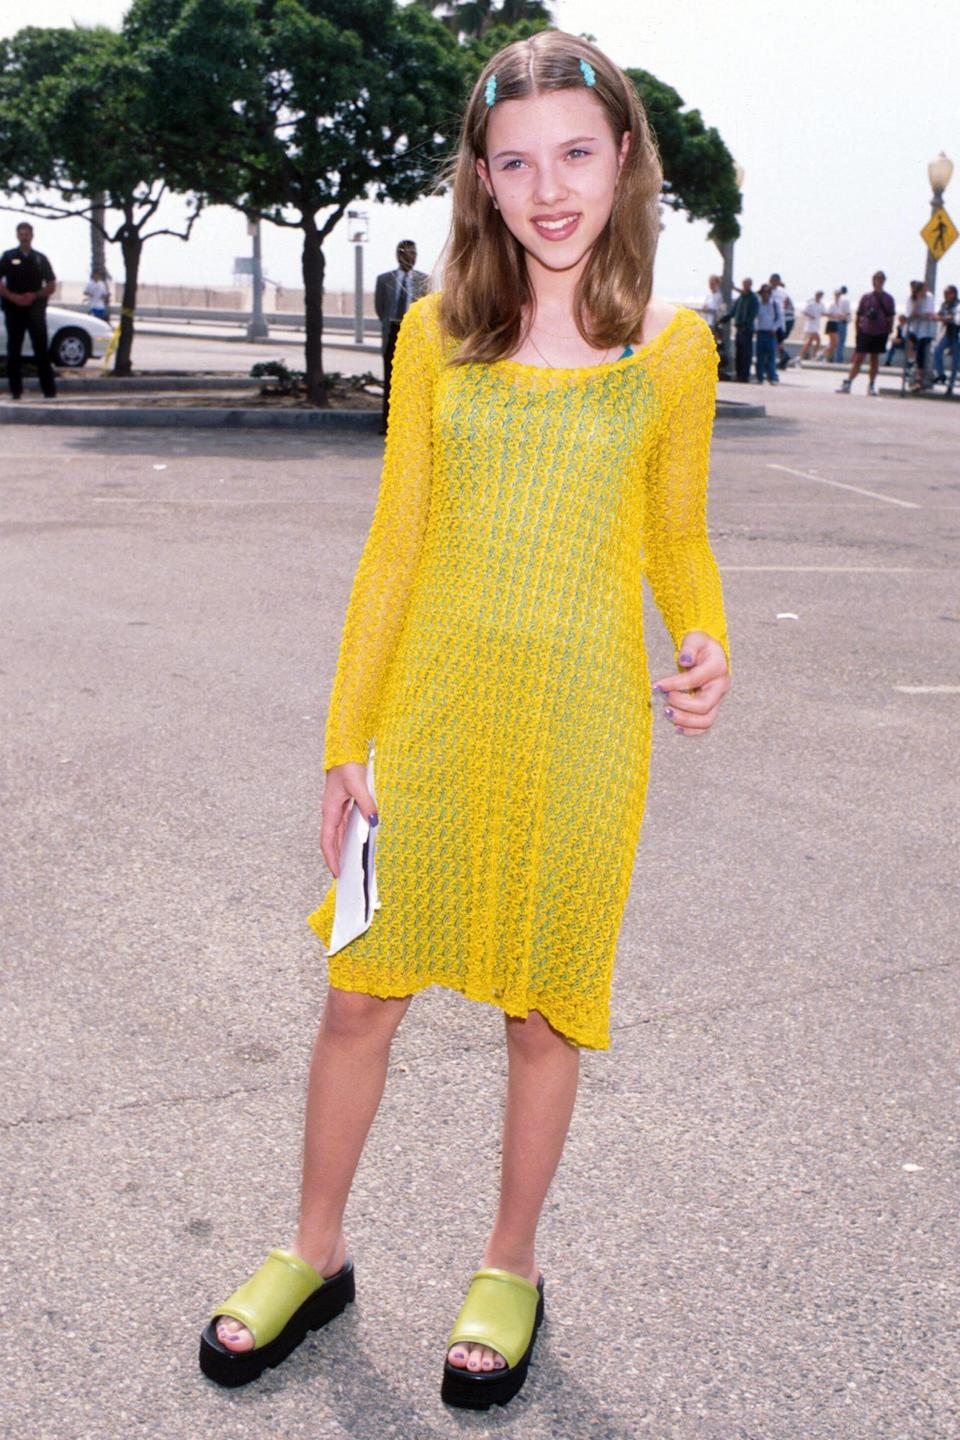 <p>With turquoise hair clips, neon green platform sandals and a sunshine-yellow crochet dress, the star had the bright idea at the Independent Spirit Awards in 1997.</p>